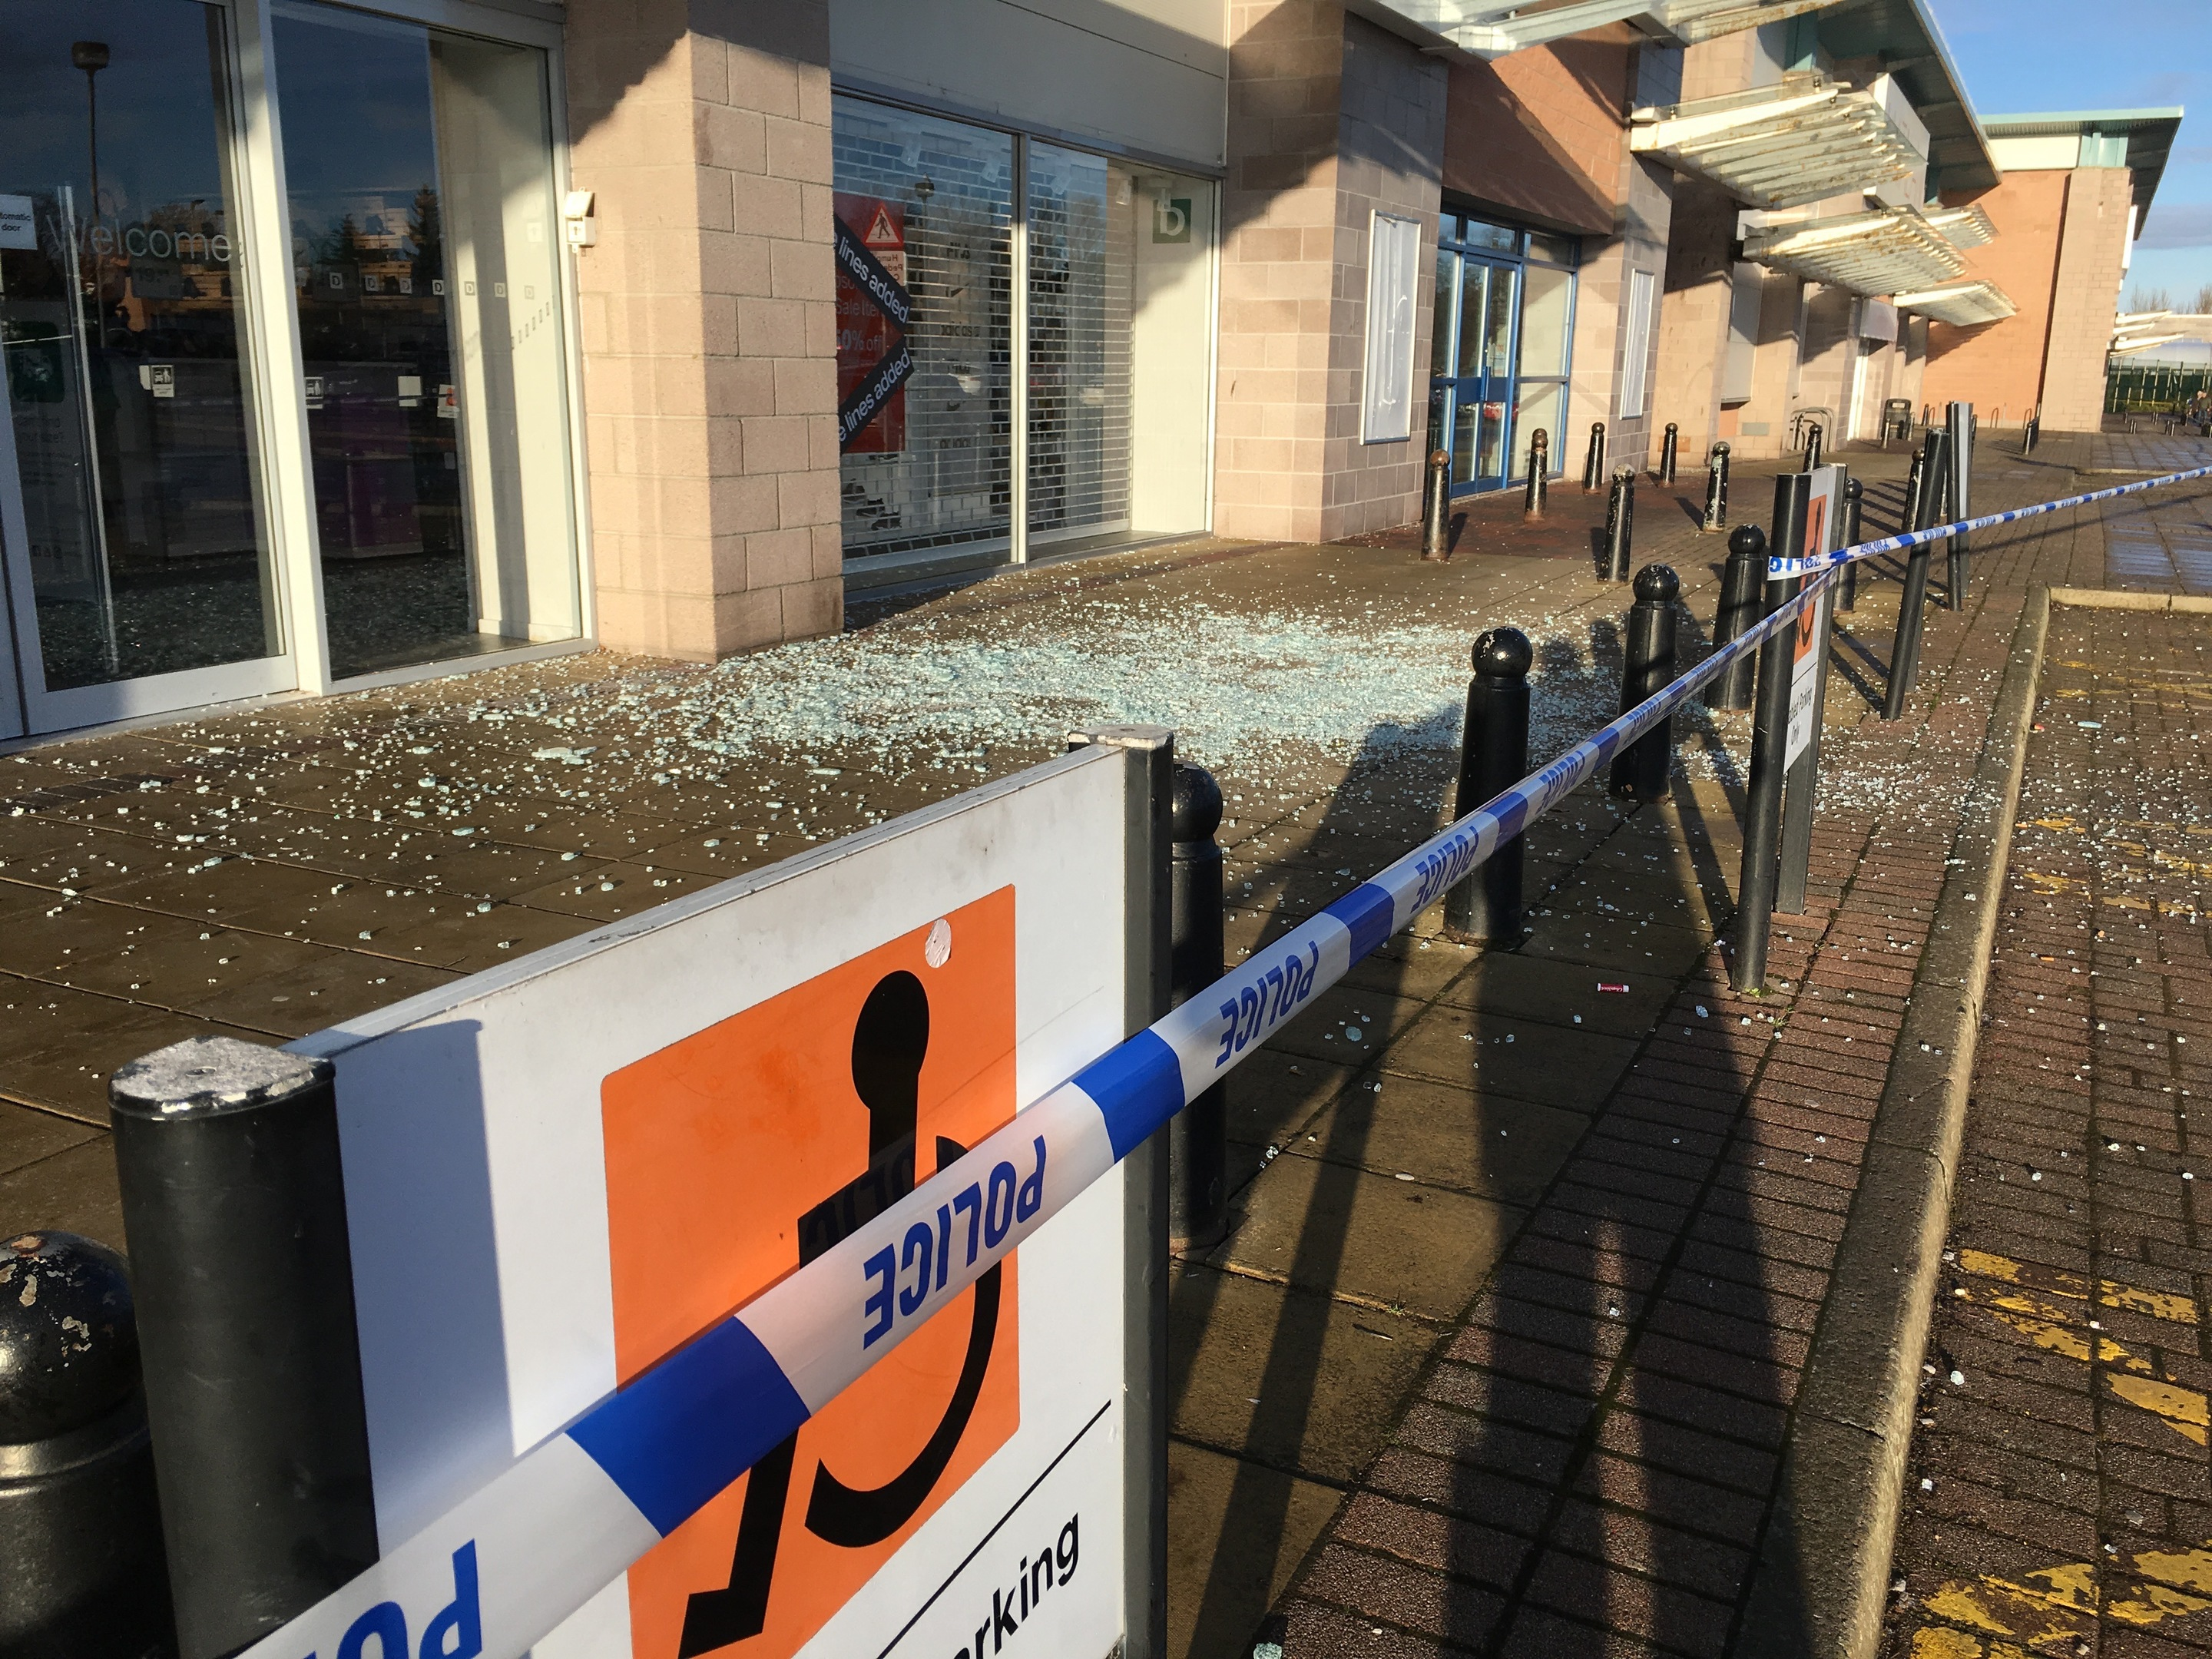 The broken glass at Inshes Retail Park